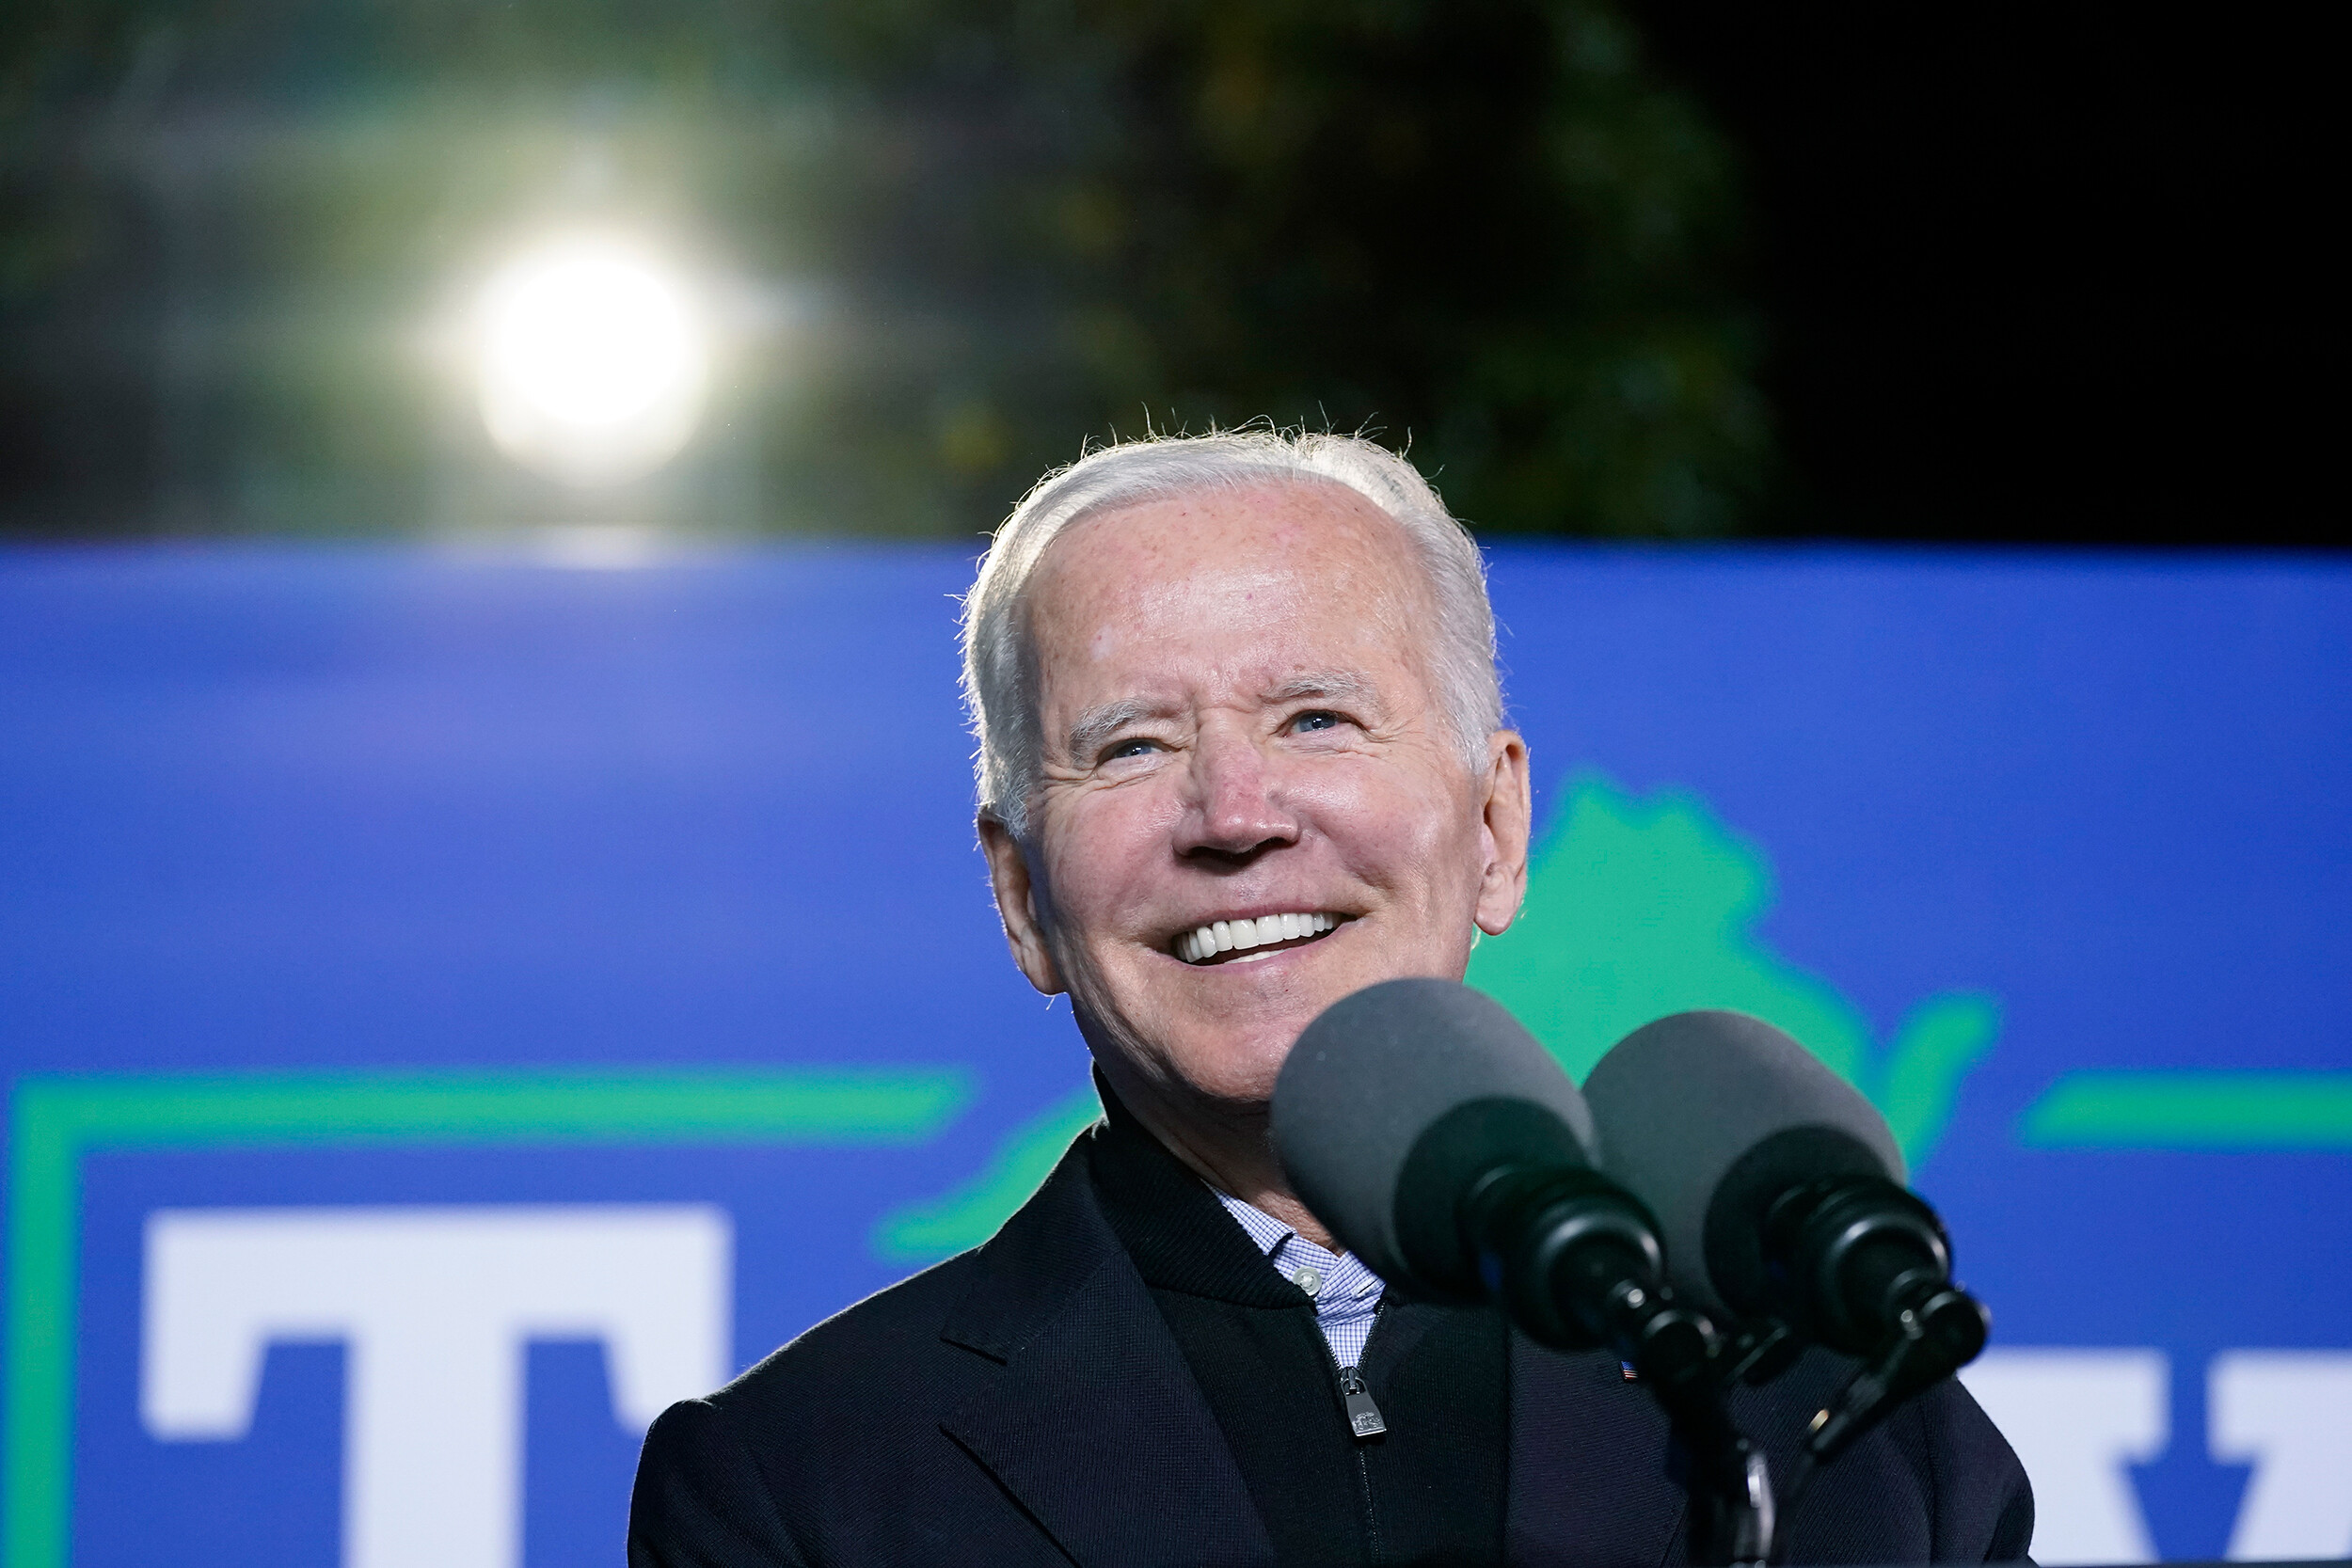 The outstanding issues are still outstanding and a deal on Biden's agenda needs to happen today